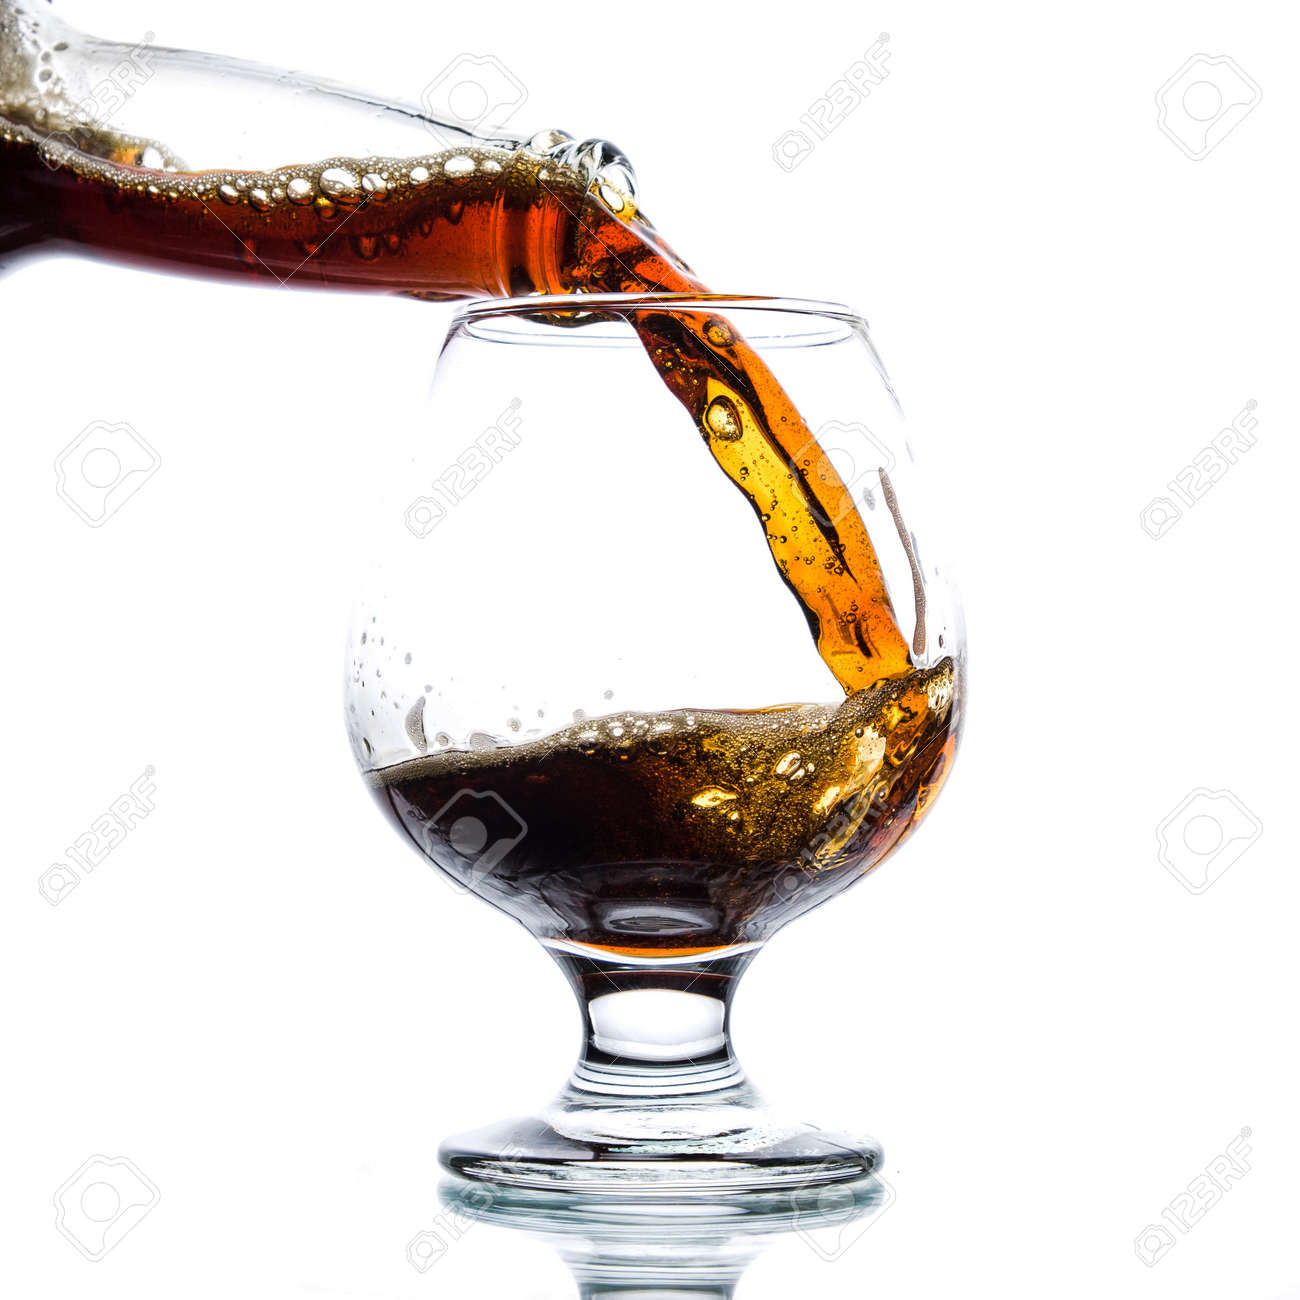 Brown ale pours from a bottle into a glass on a light background - 152811670